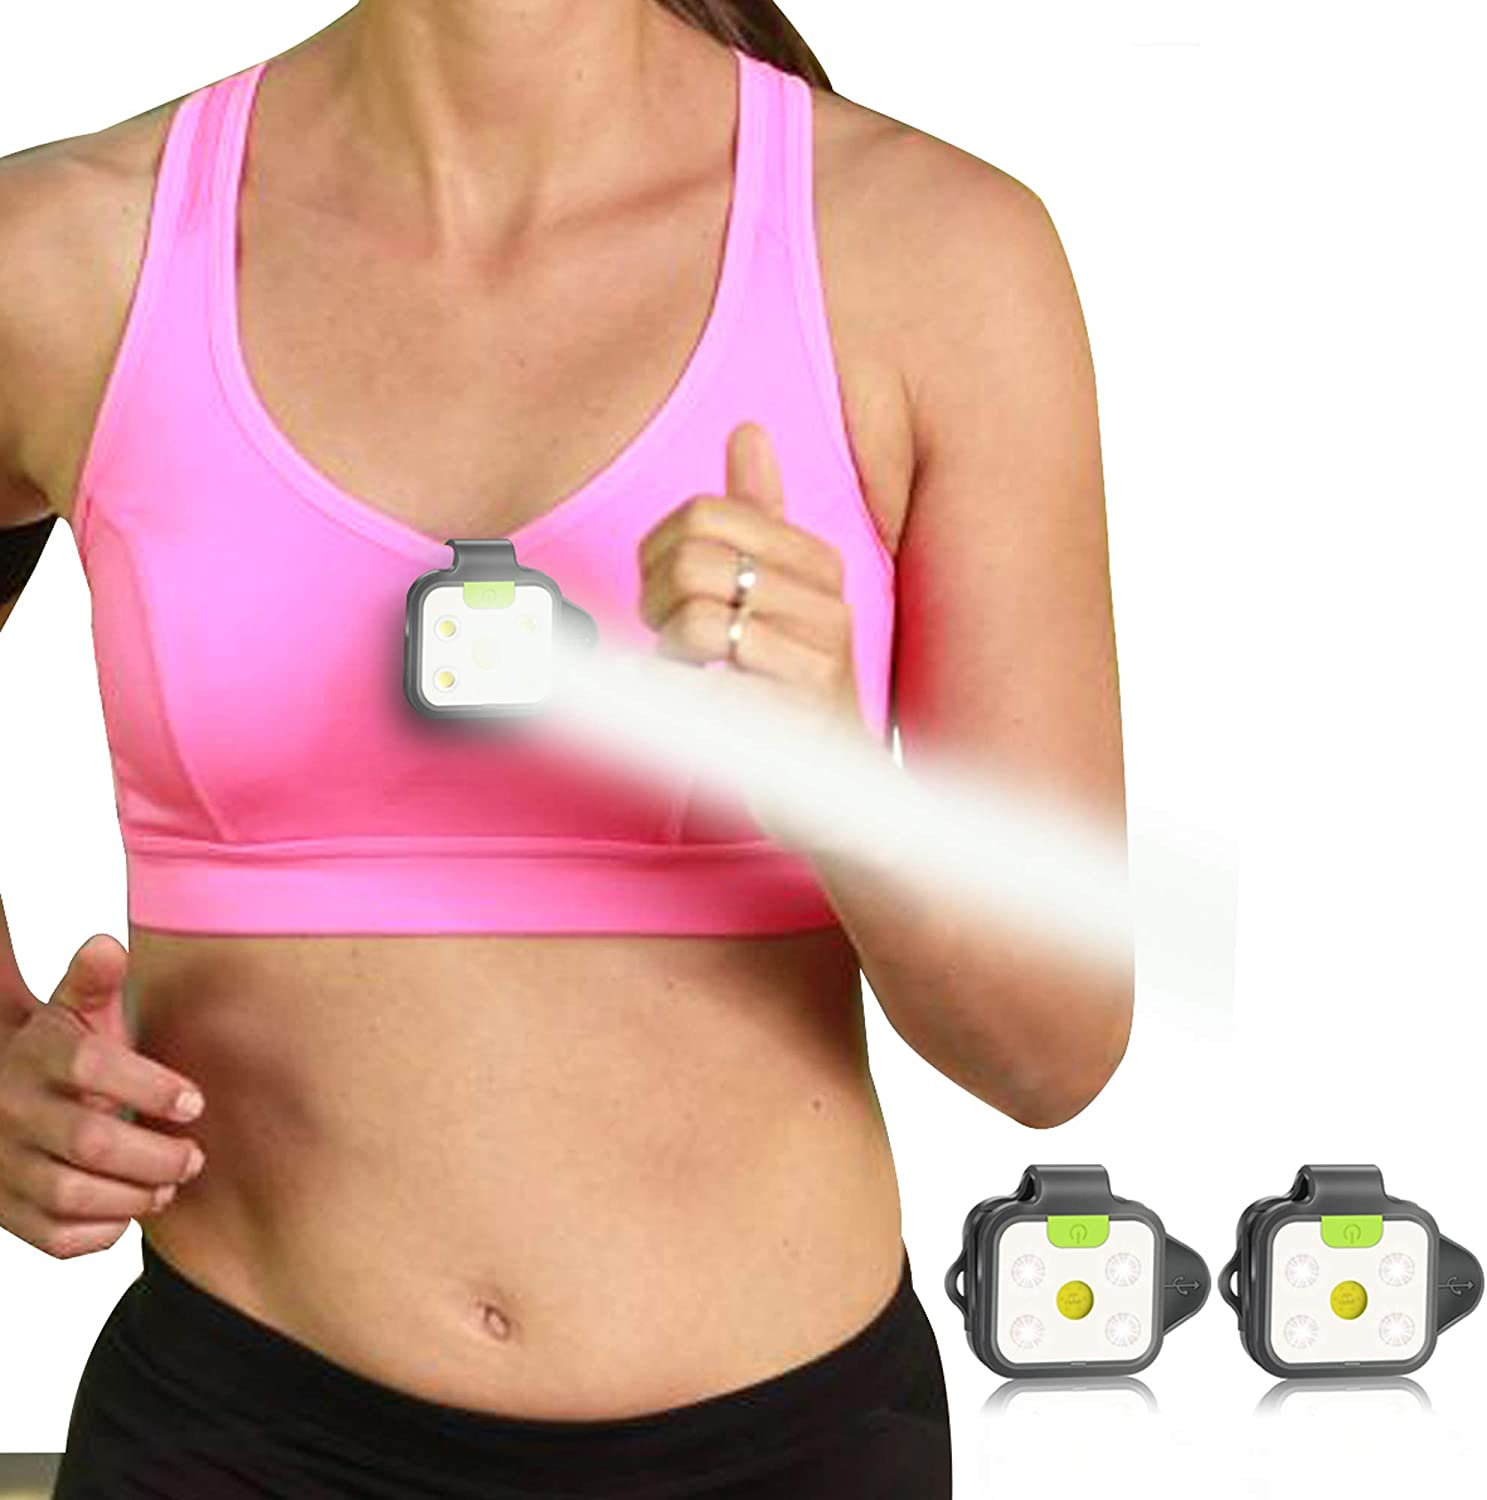 Image of a woman in sportswear with LED running light attached to her shirt.